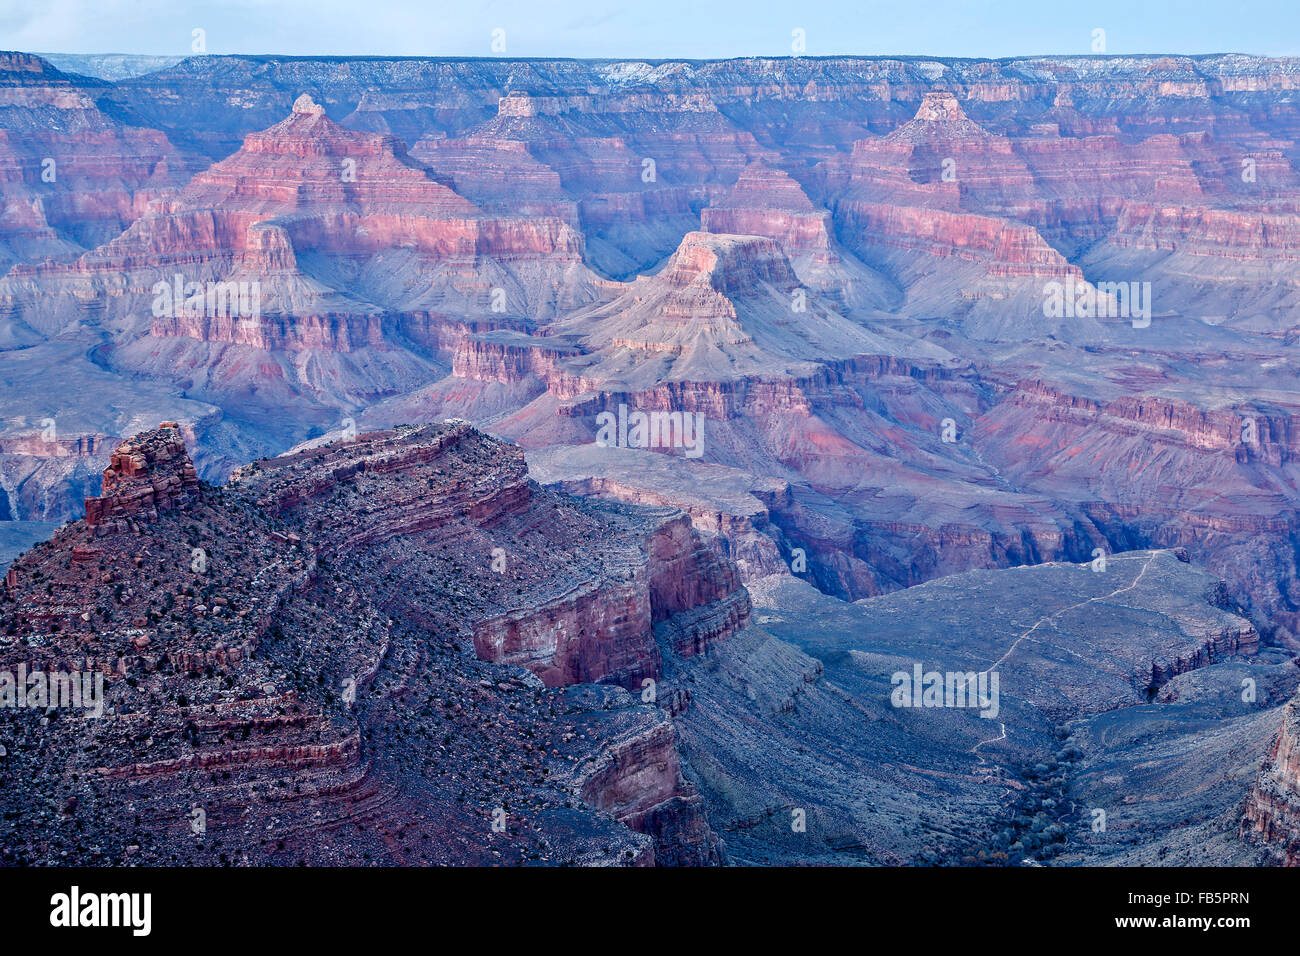 Rock formations and canyons from Rim Trail, The Village, Grand Canyon National Park, Arizona USA - Stock Image